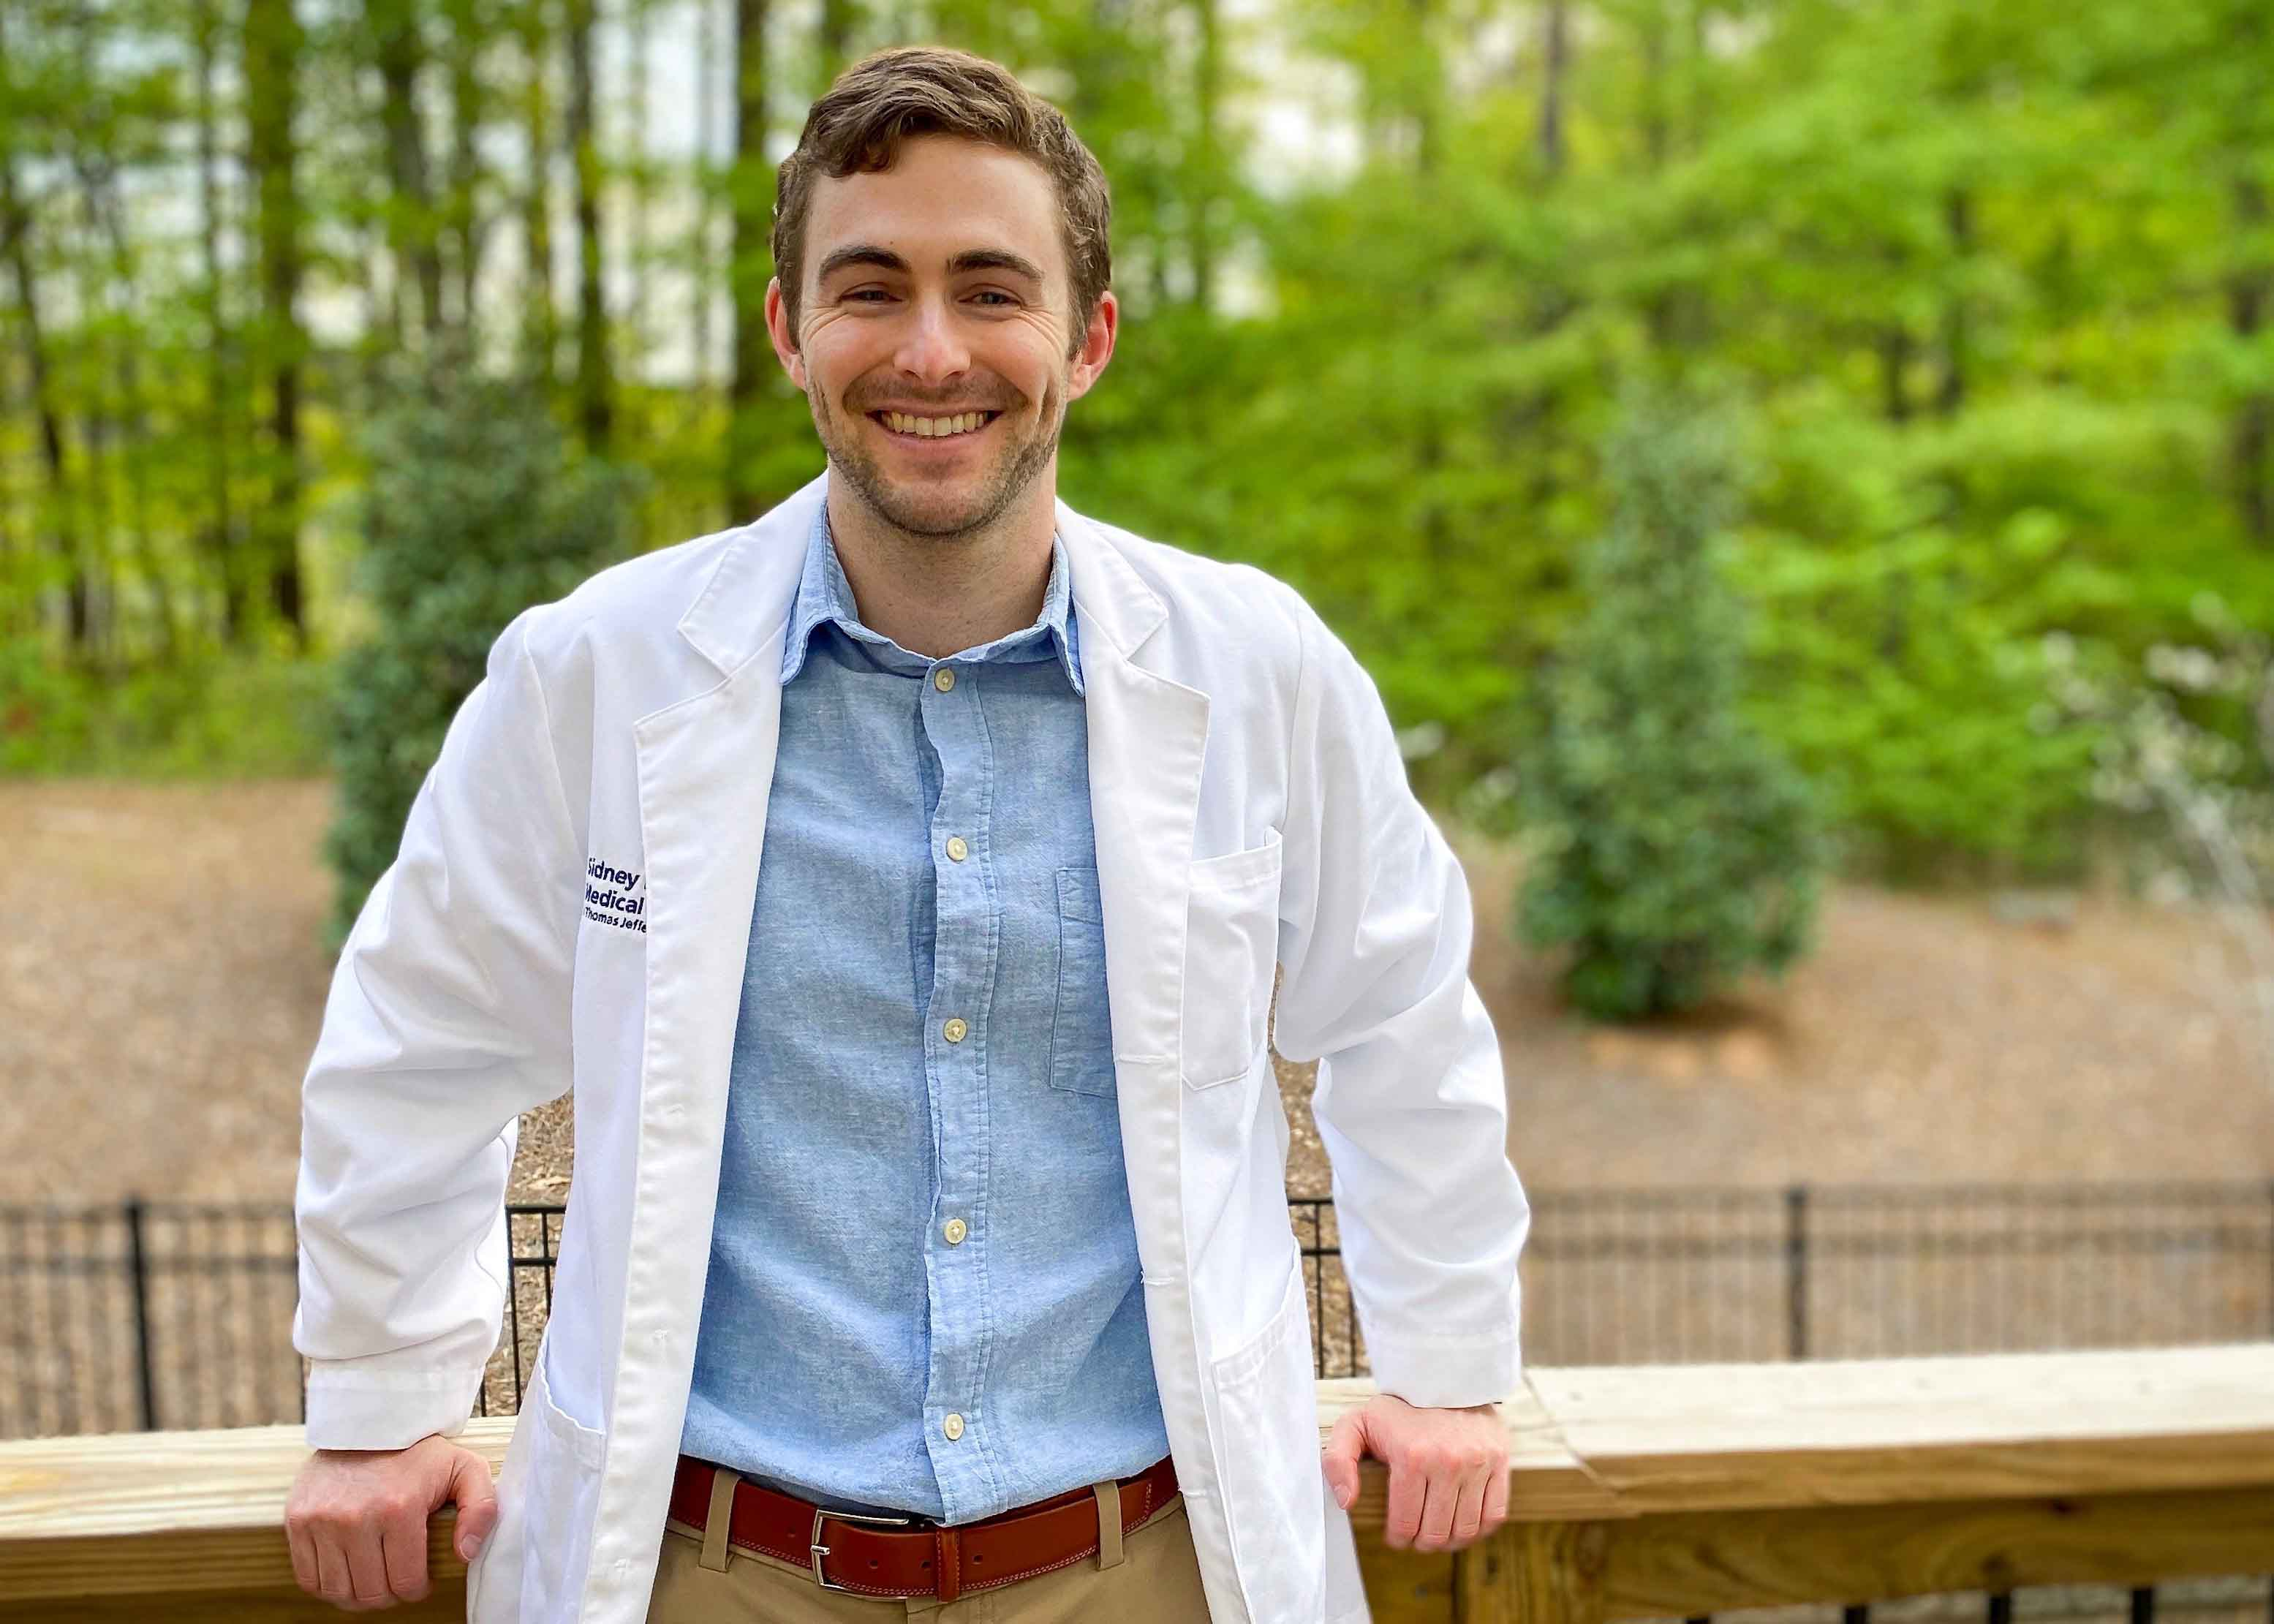 UGA alumnus and current fourth-year medical student Jake Goodman has been sharing stories about his path to medical school on social media after realizing that the challenges he's faced resonate with many students. He now has over 210,000 followers on TikTok. (contributed photo)